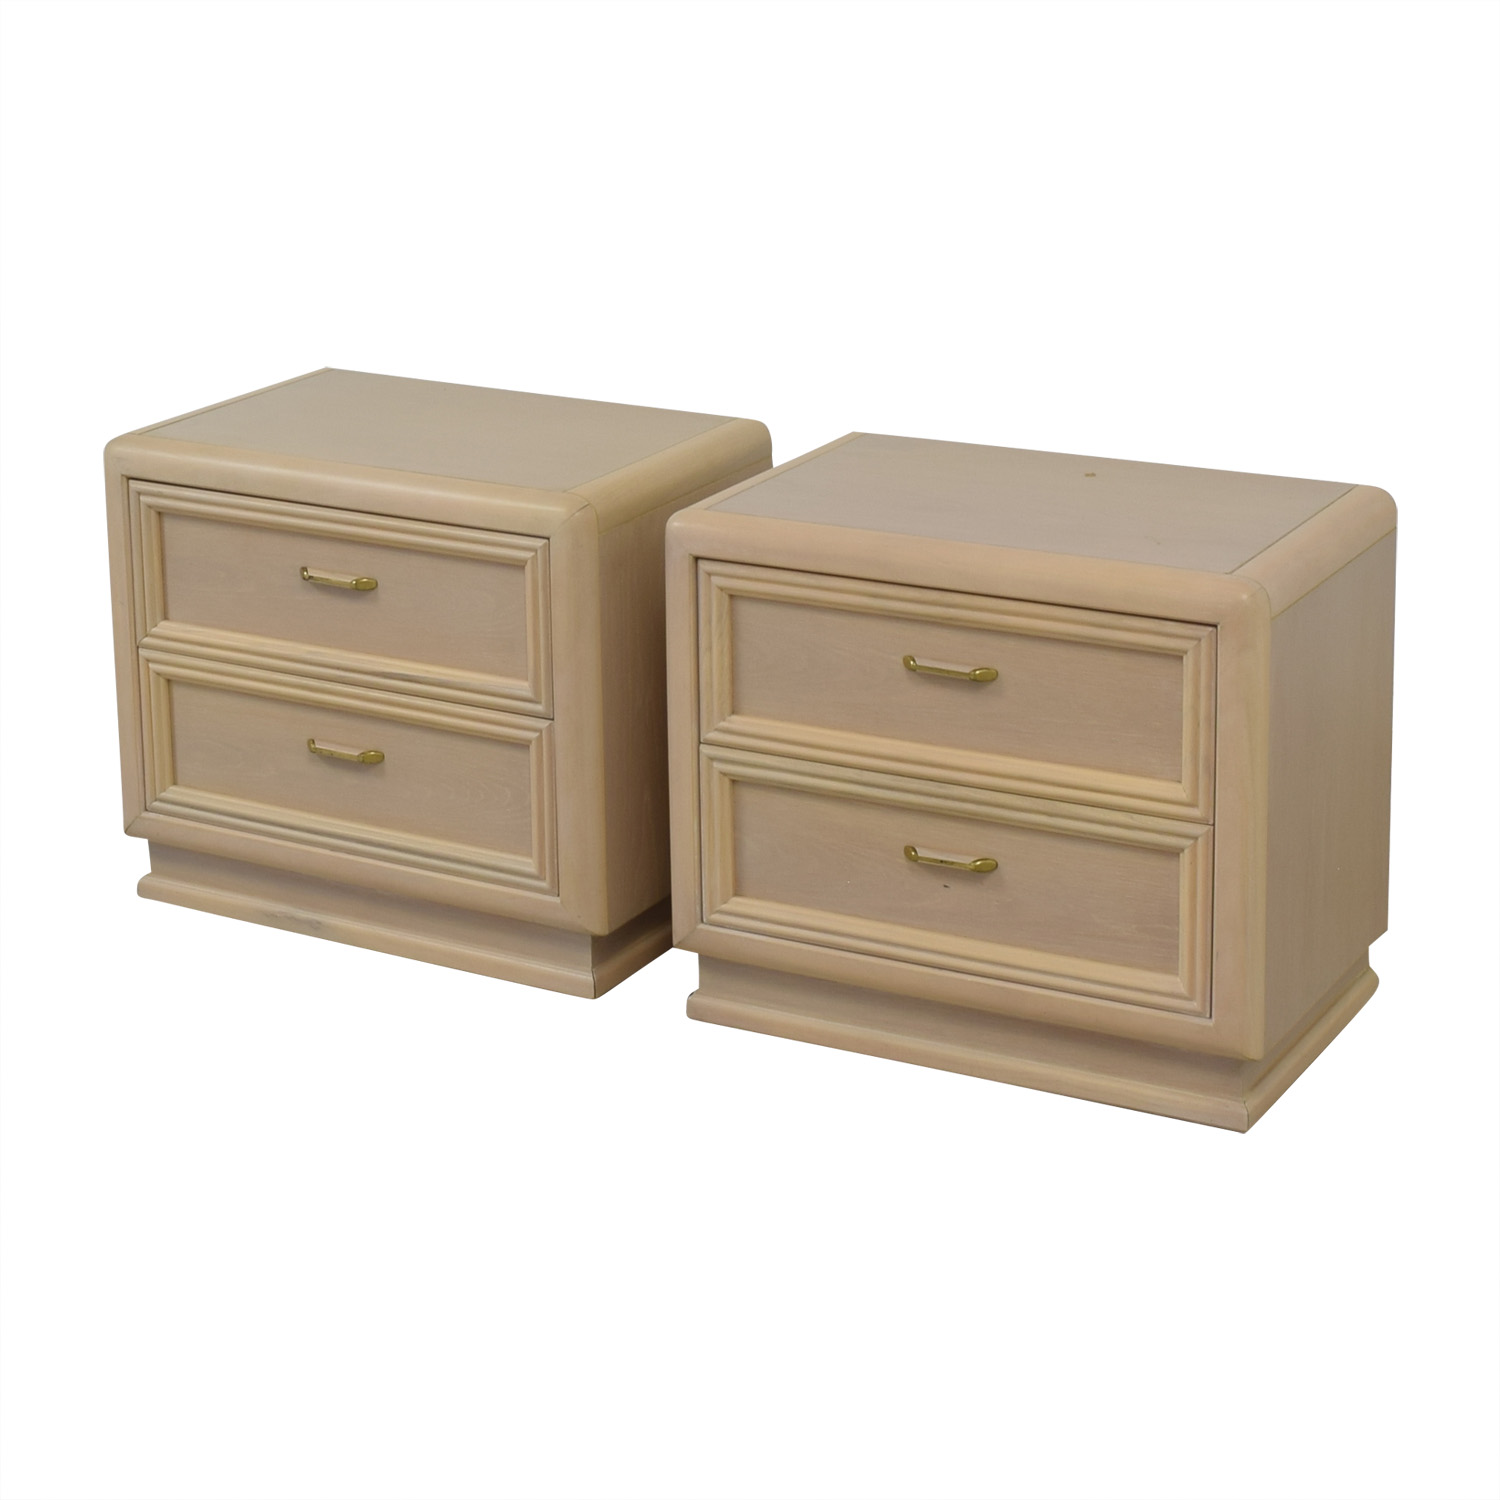 Thomasville Two Drawer Nightstands / Tables